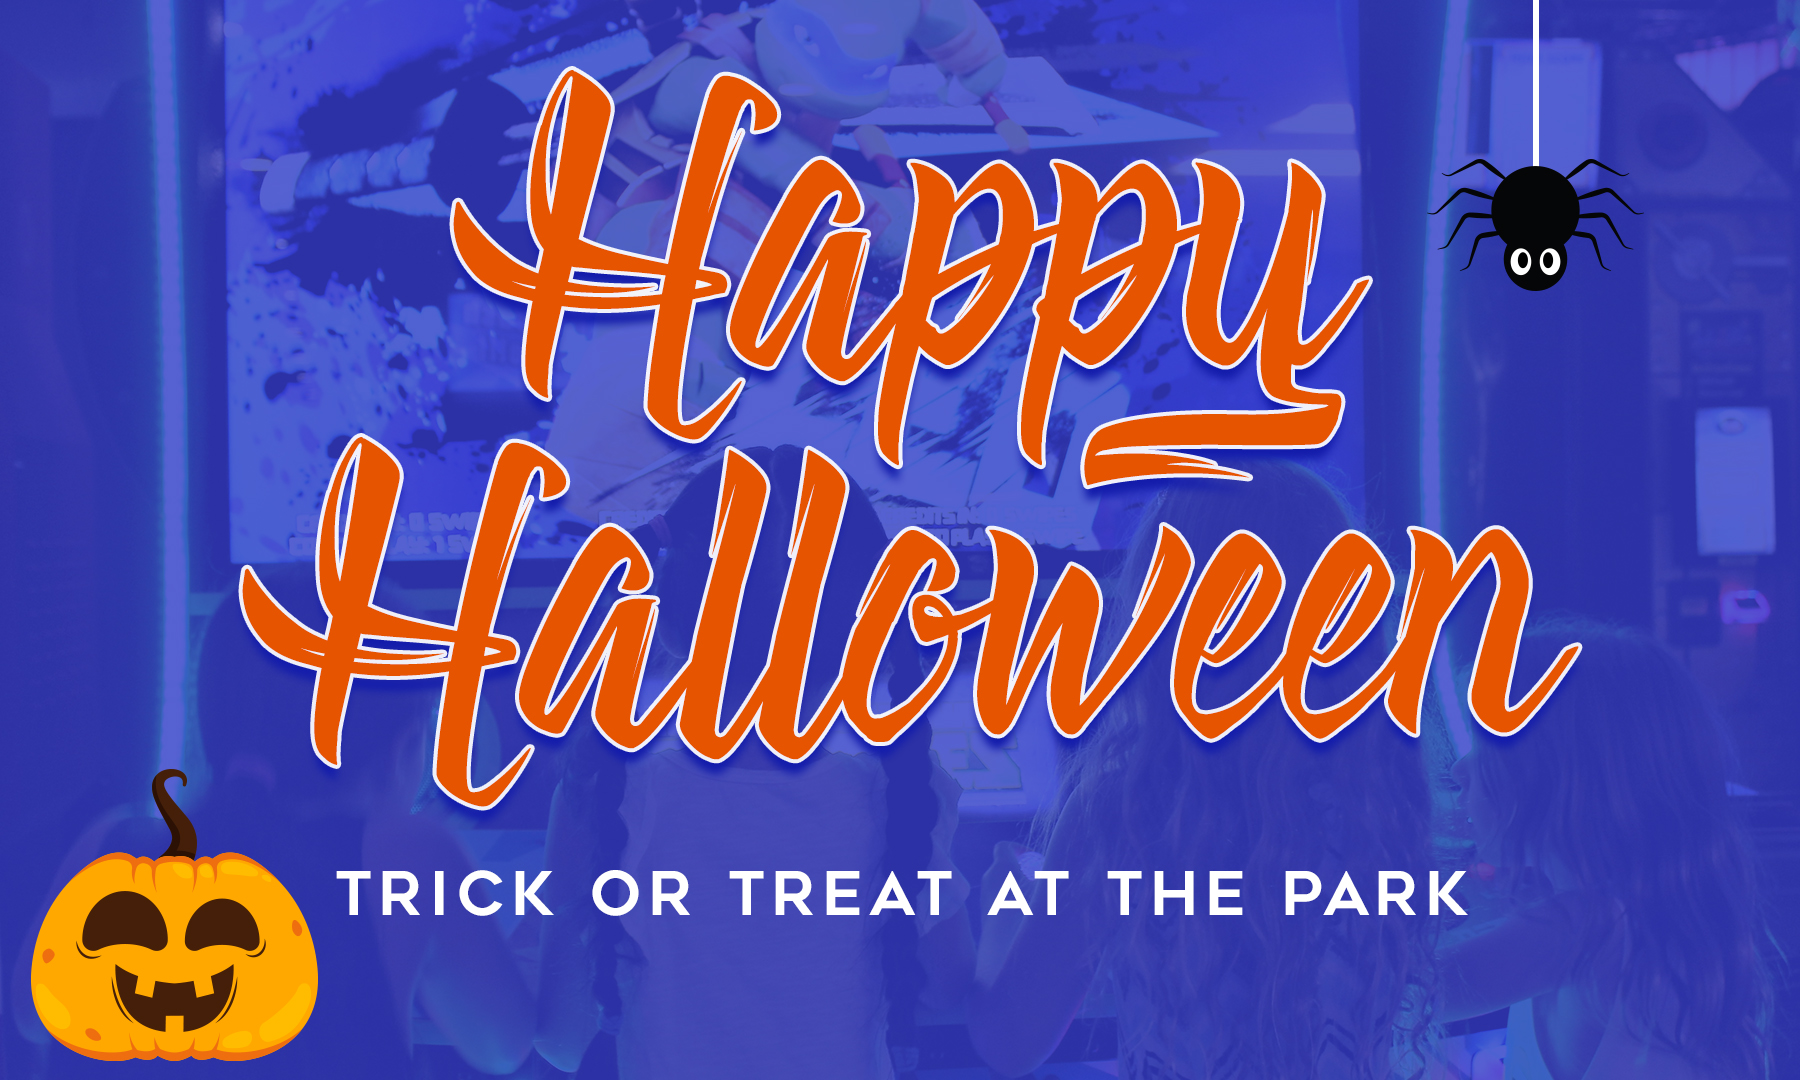 Trick or Treat with us